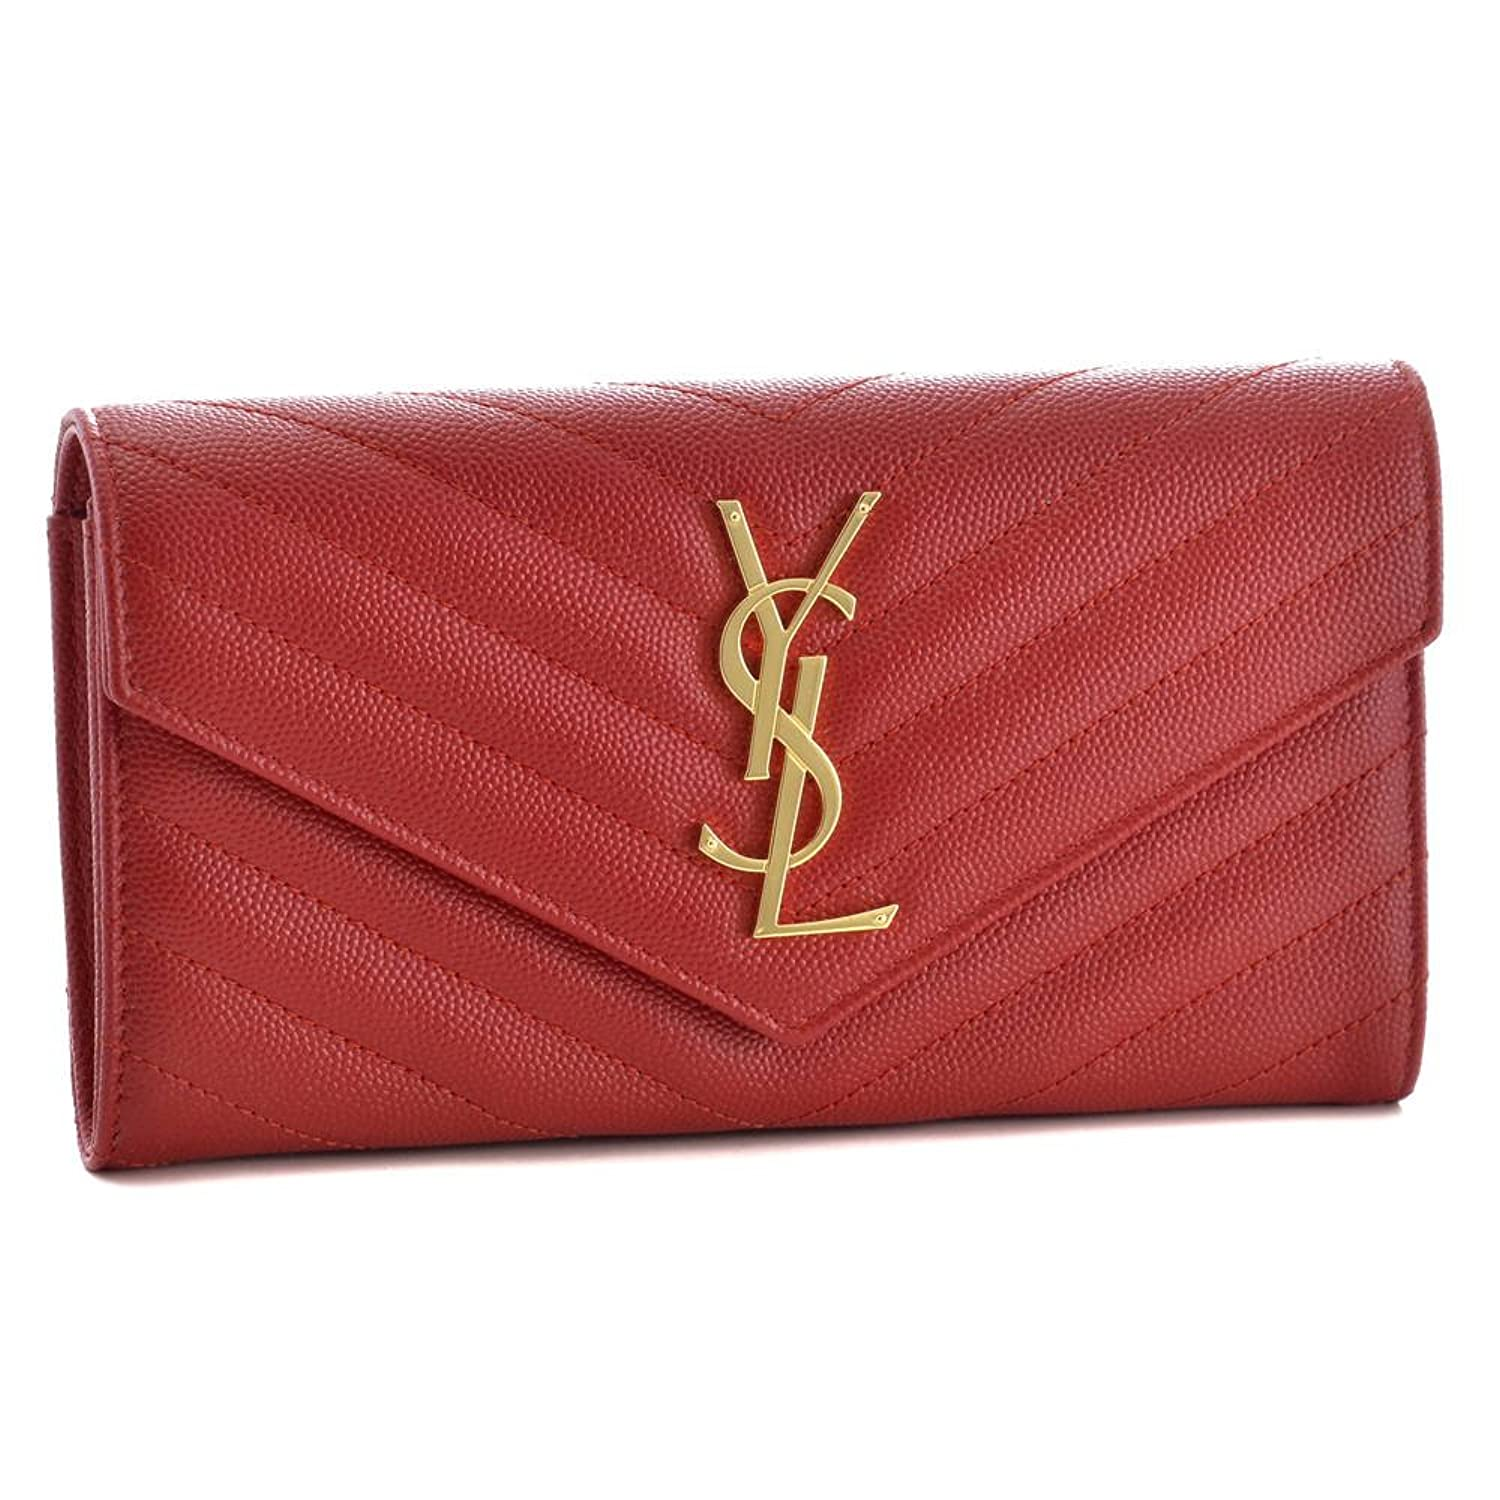 (サンローラン パリ) SAINT LAURENT PARIS 財布 長財布 372264 BOW01 6422 NEW RED 【MONOGRAMME】 [並行輸入品] B074Z2PK21